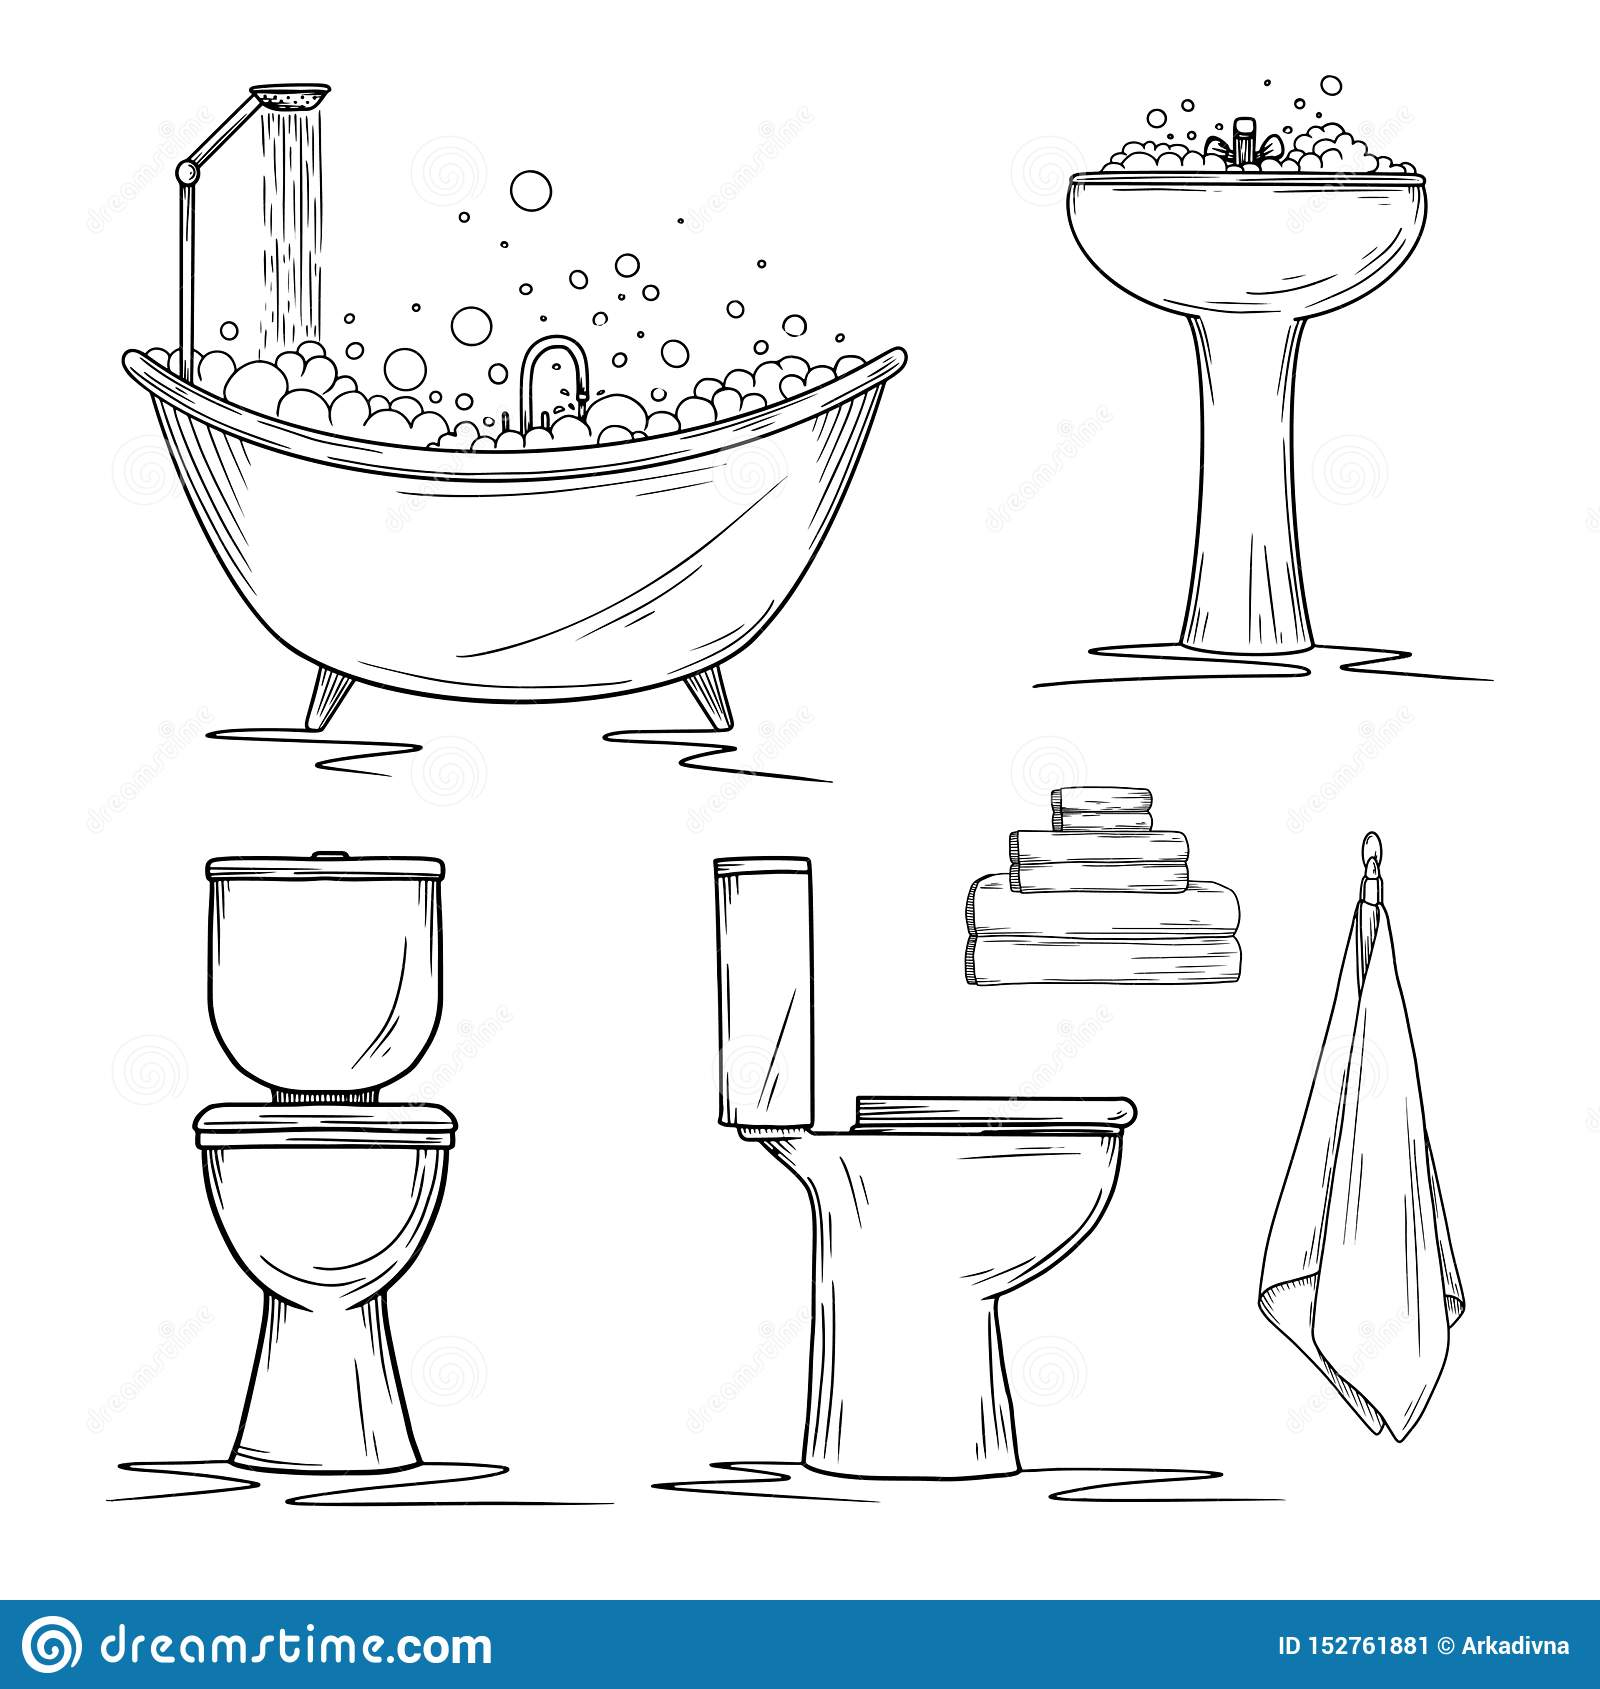 Hand Drawn Bathroom Interior Elements Toilet And Washbasin Bath And Towels Stock Illustration Illustration Of Corner Shower 152761881